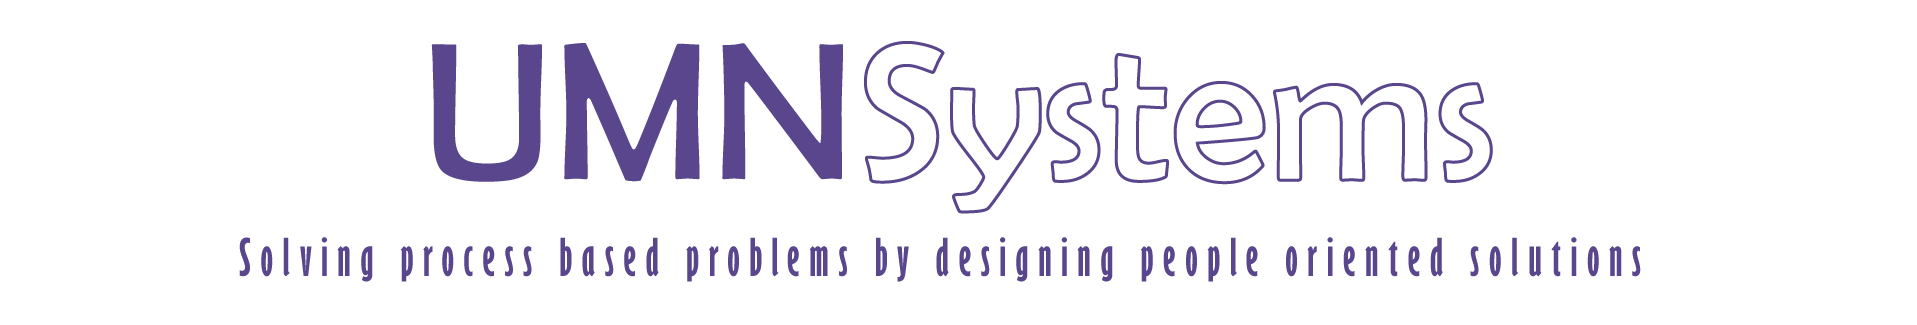 UMNSystems-Title-Graphics-1.png